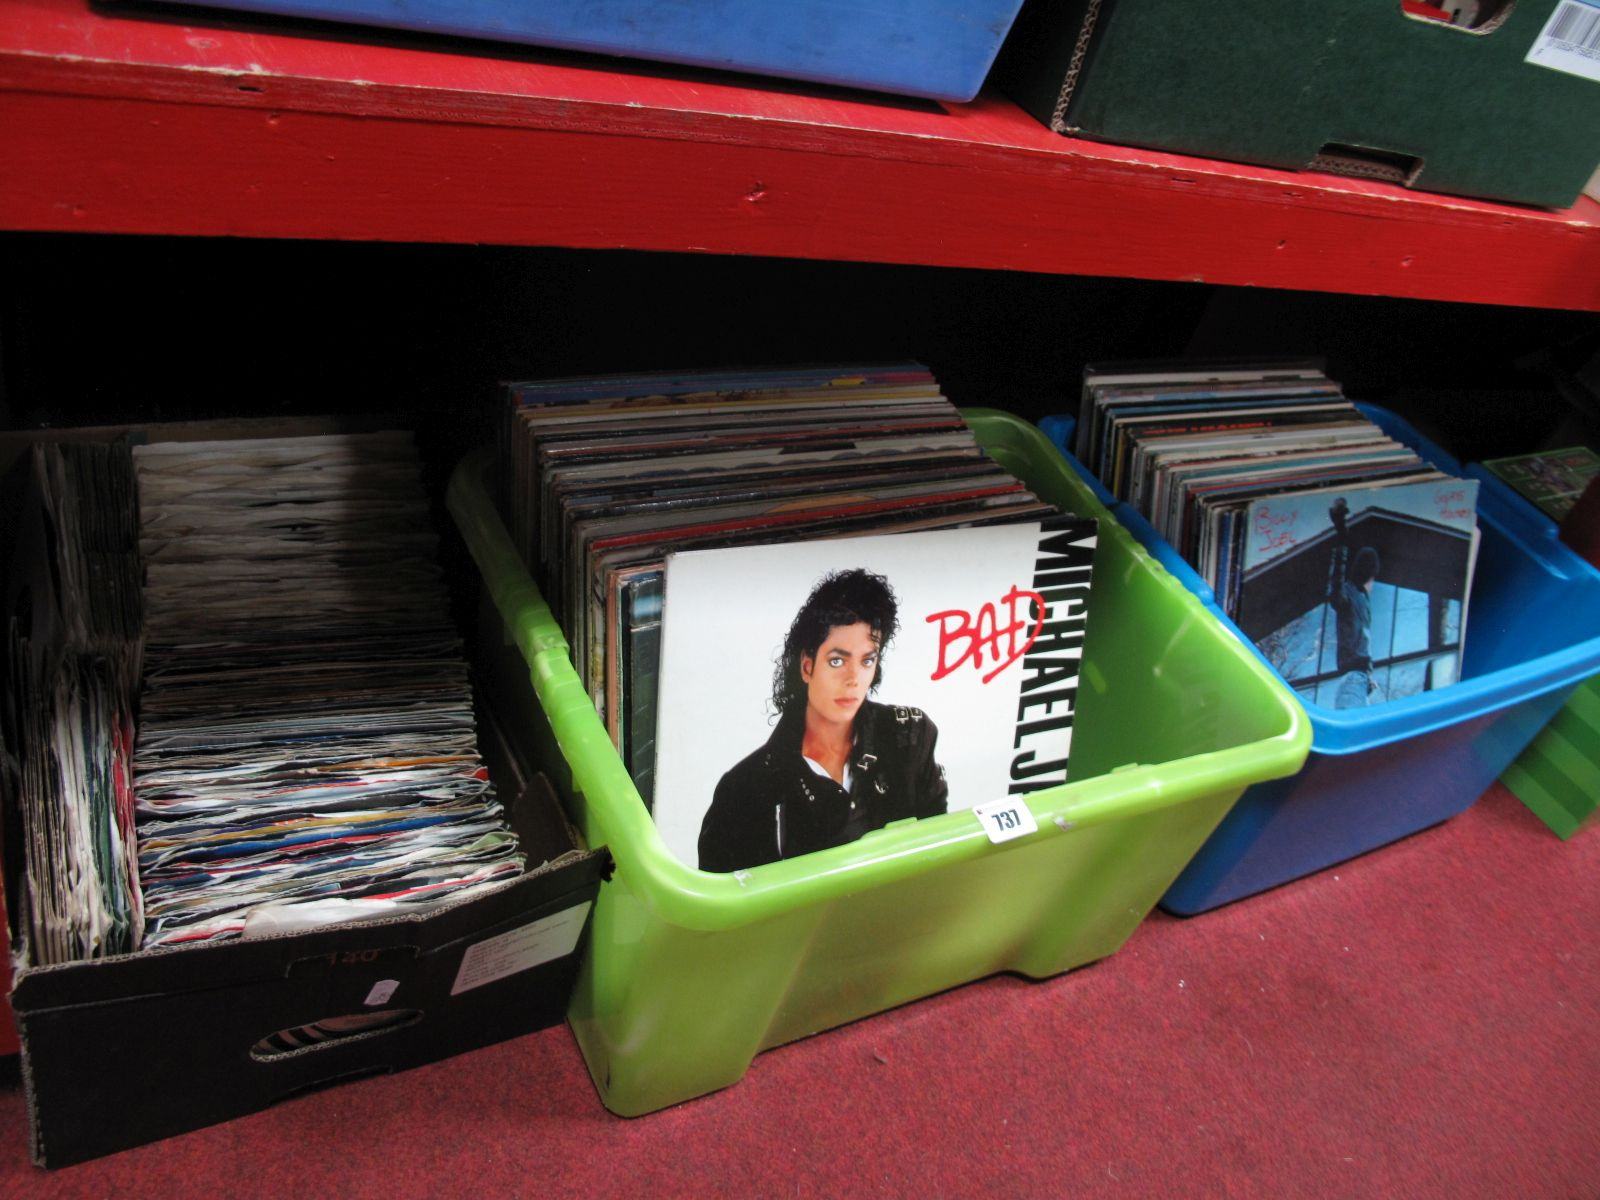 Lot 737 - A Quantity of 33 and 45 RPM records:- Three Boxes